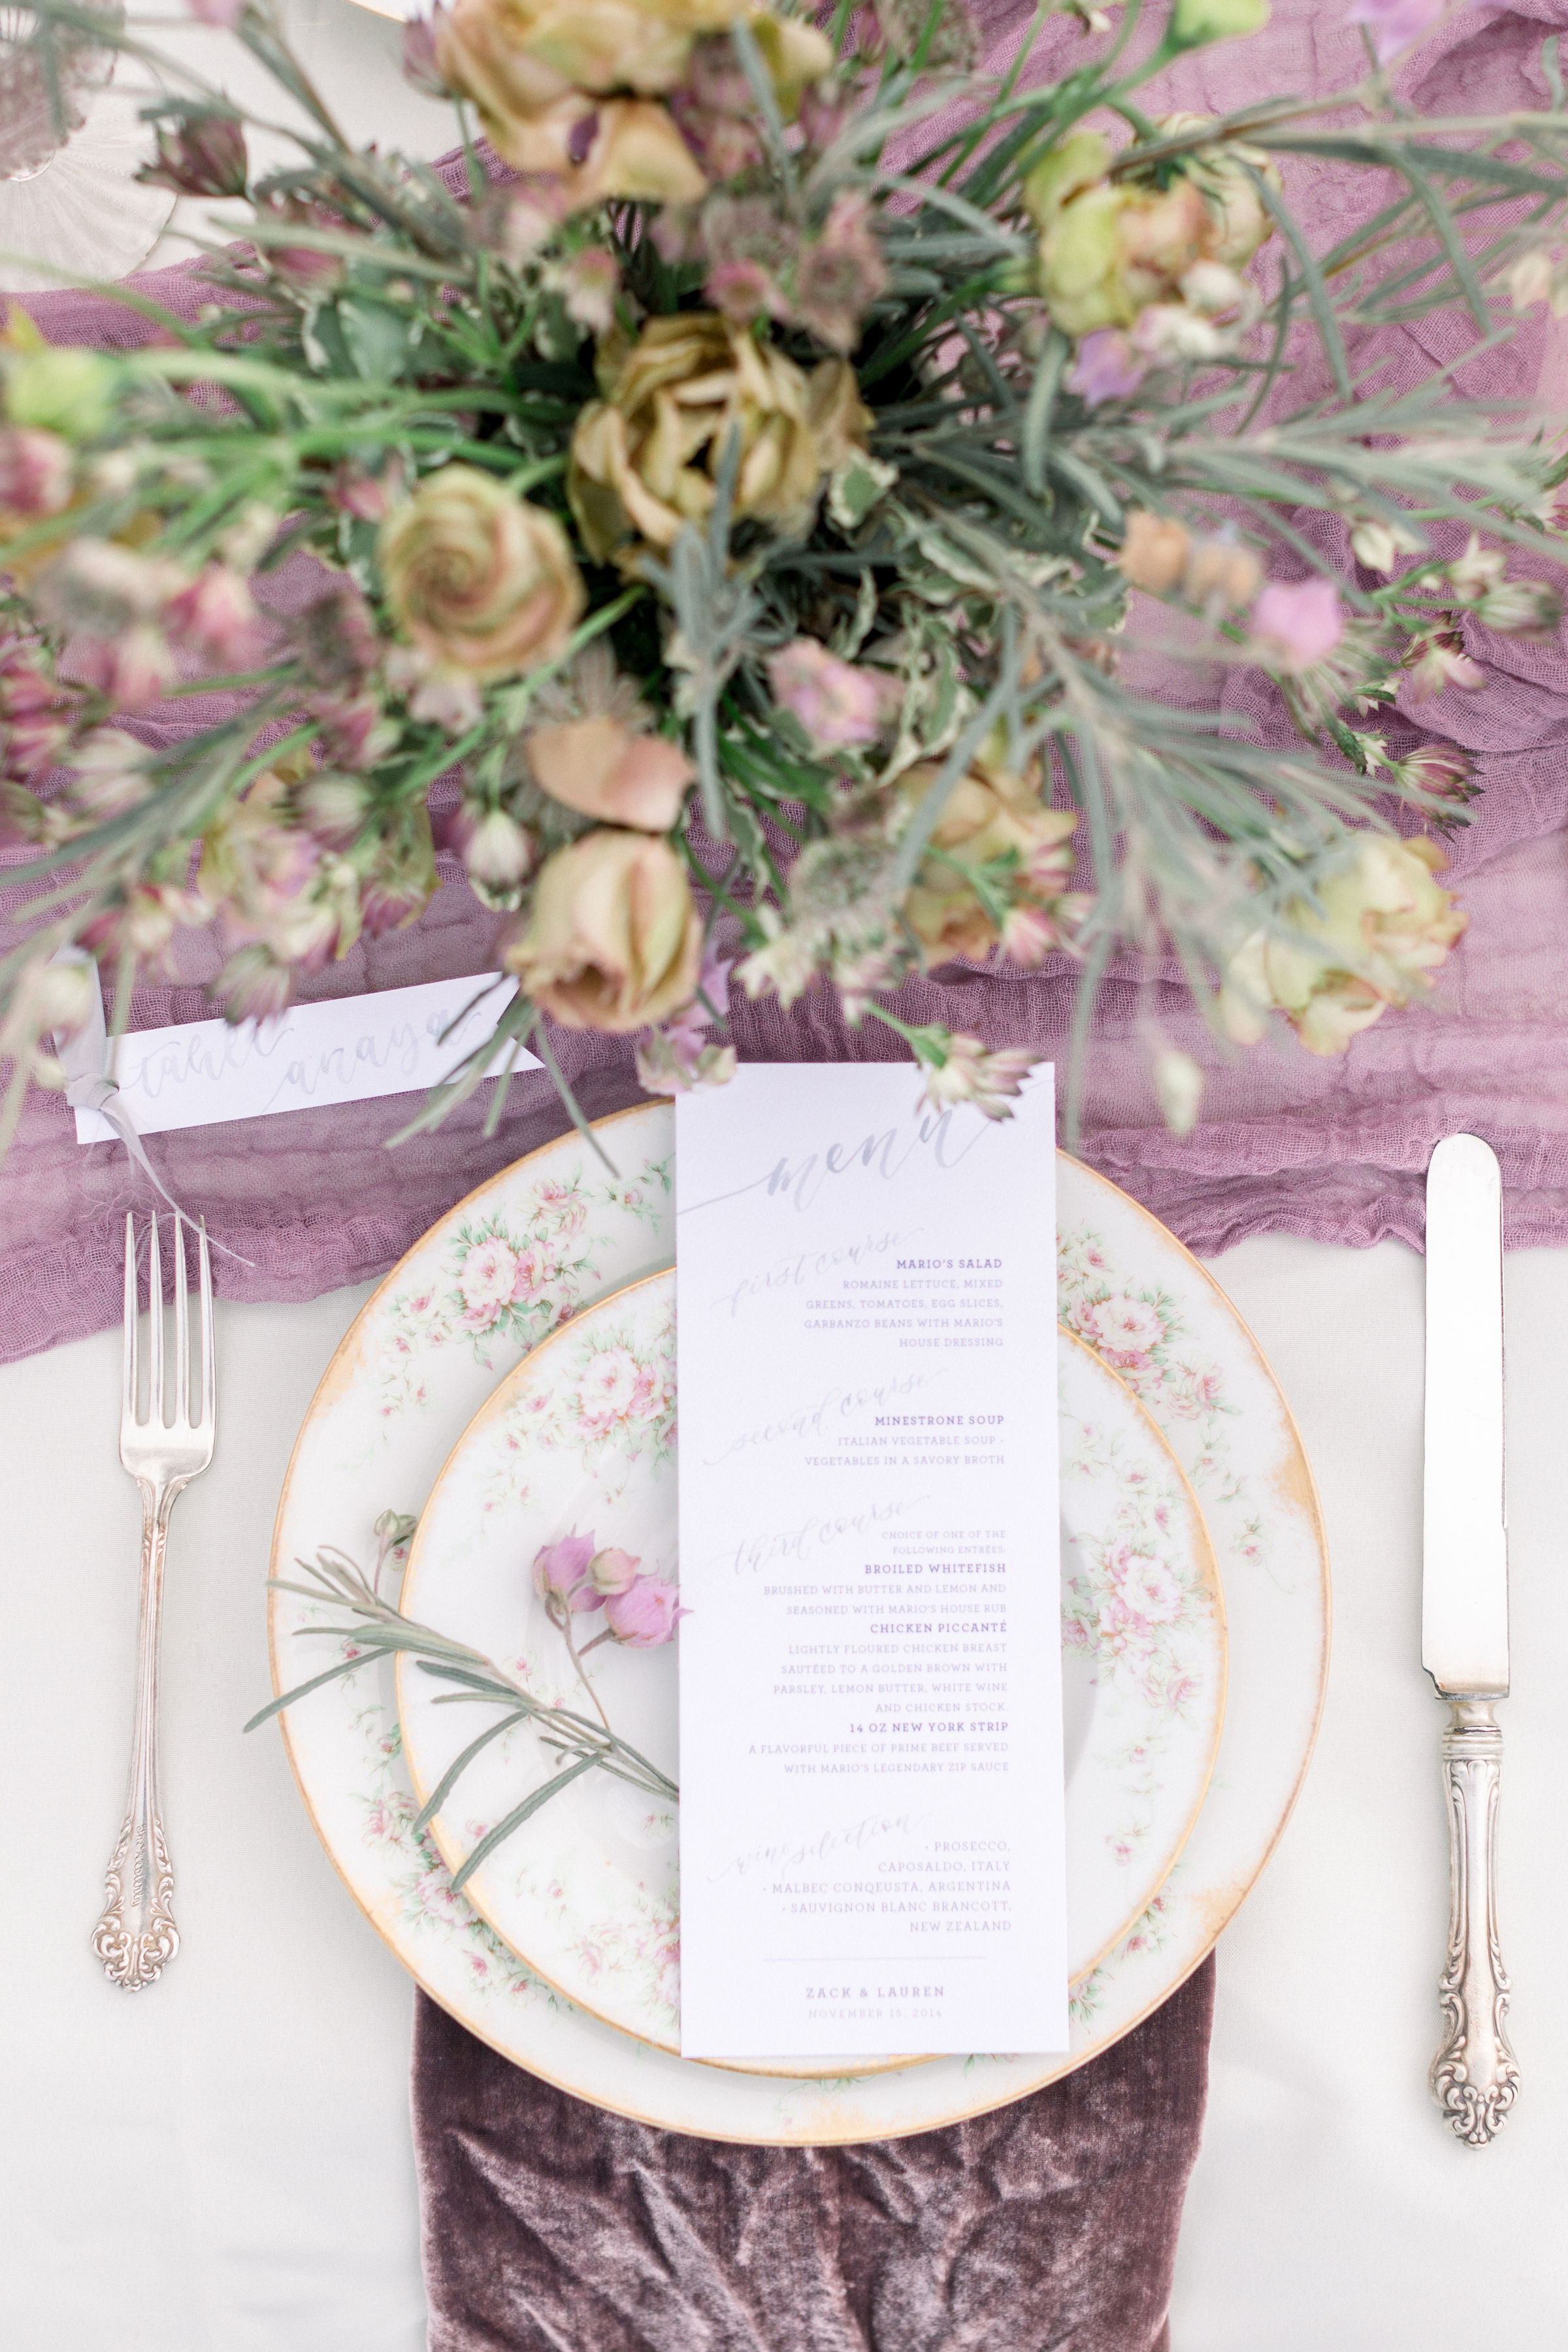 StephanieWeberPhotography-Gray and Purple Tablescape – Sam Allen Creates Watercolor Menus and Placecards